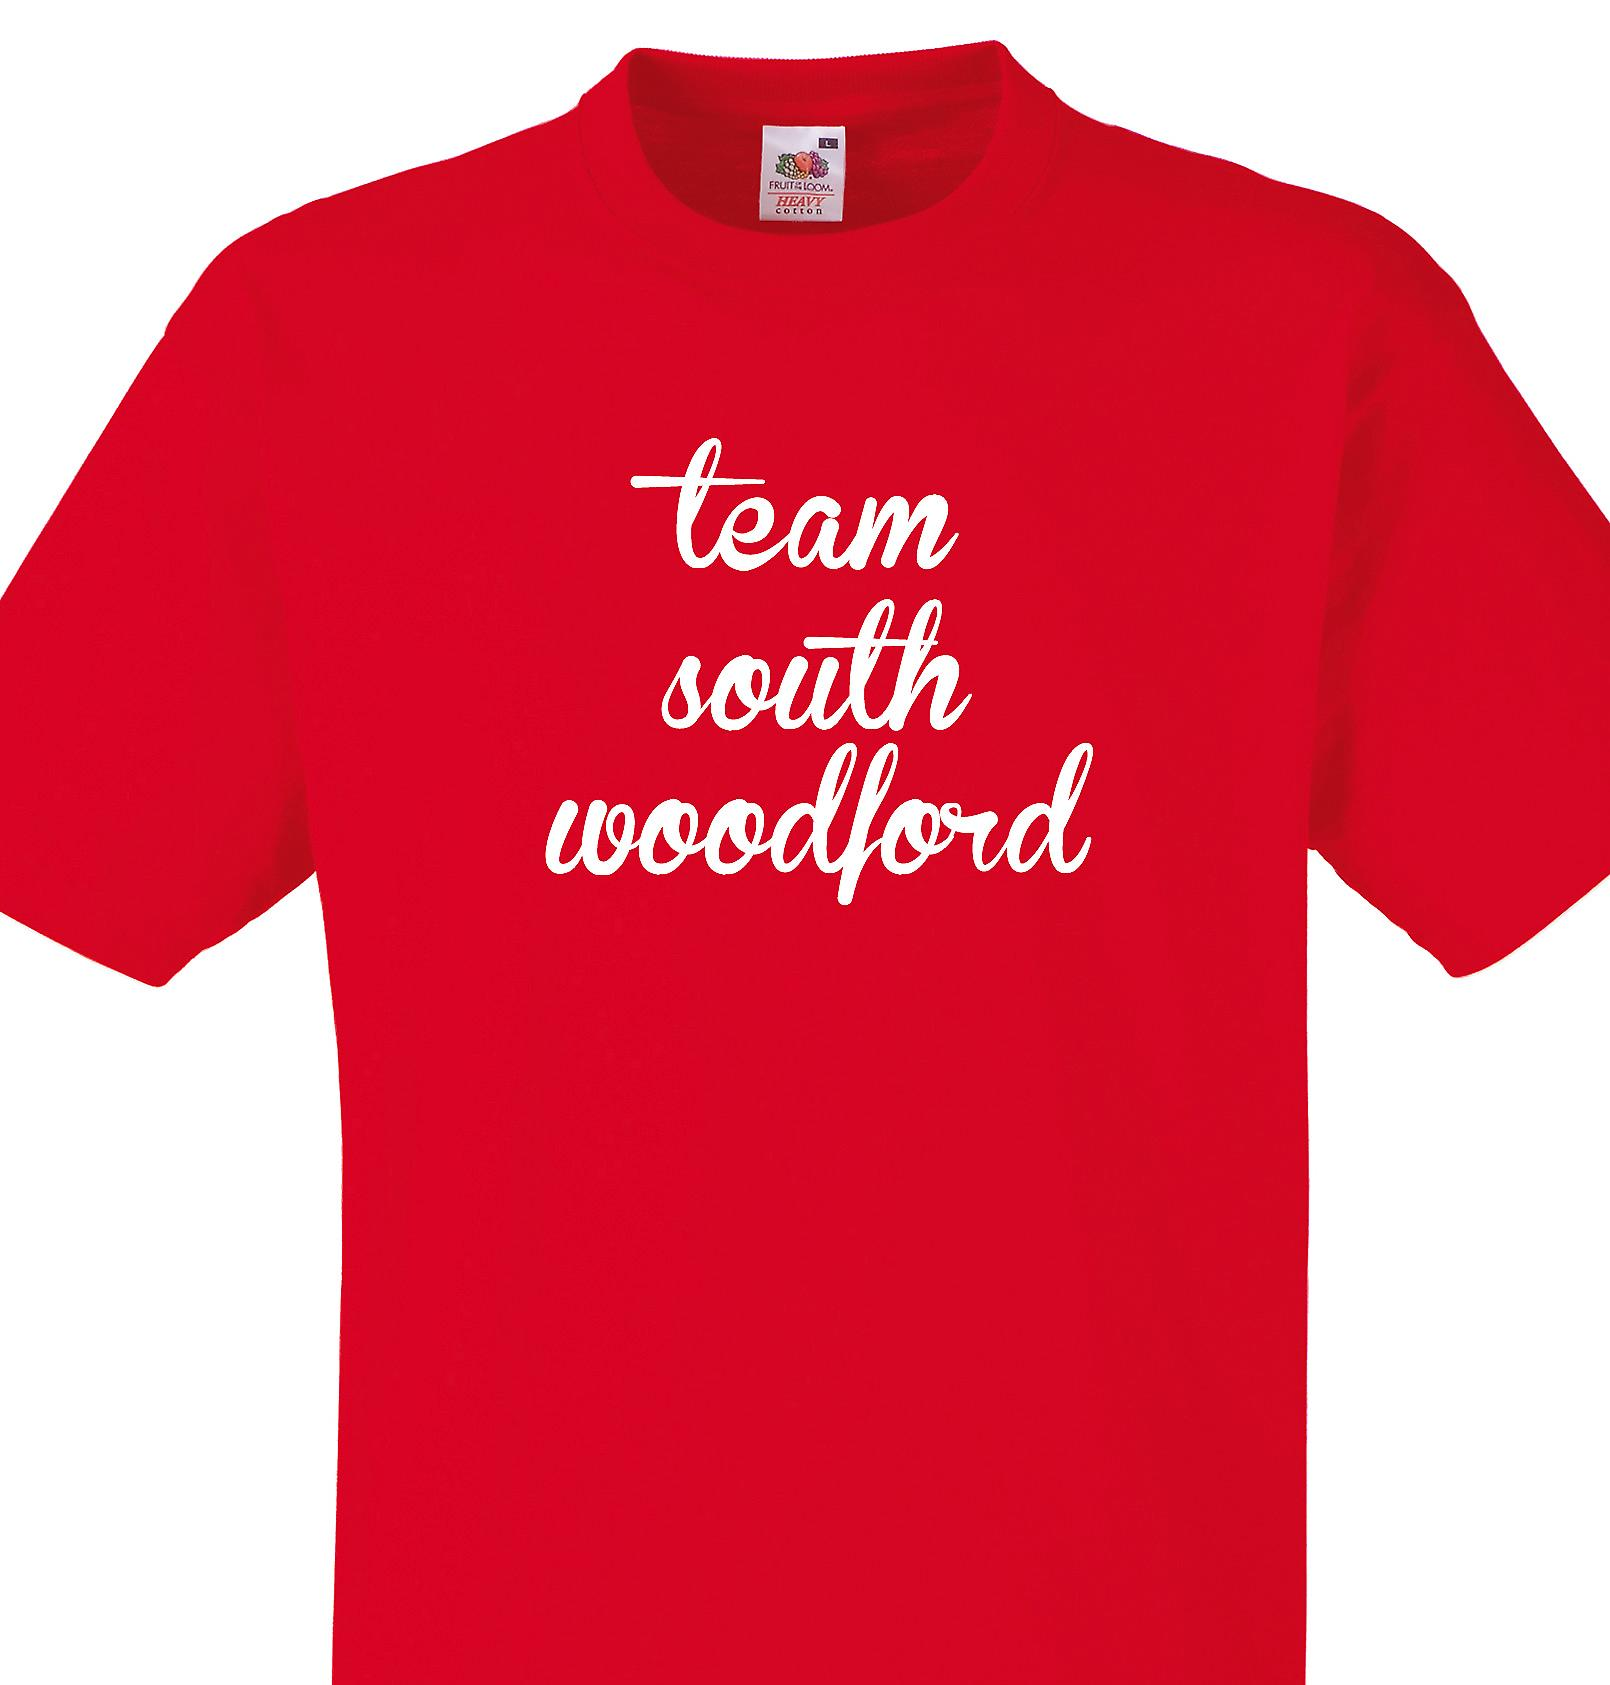 Team South woodford Red T shirt